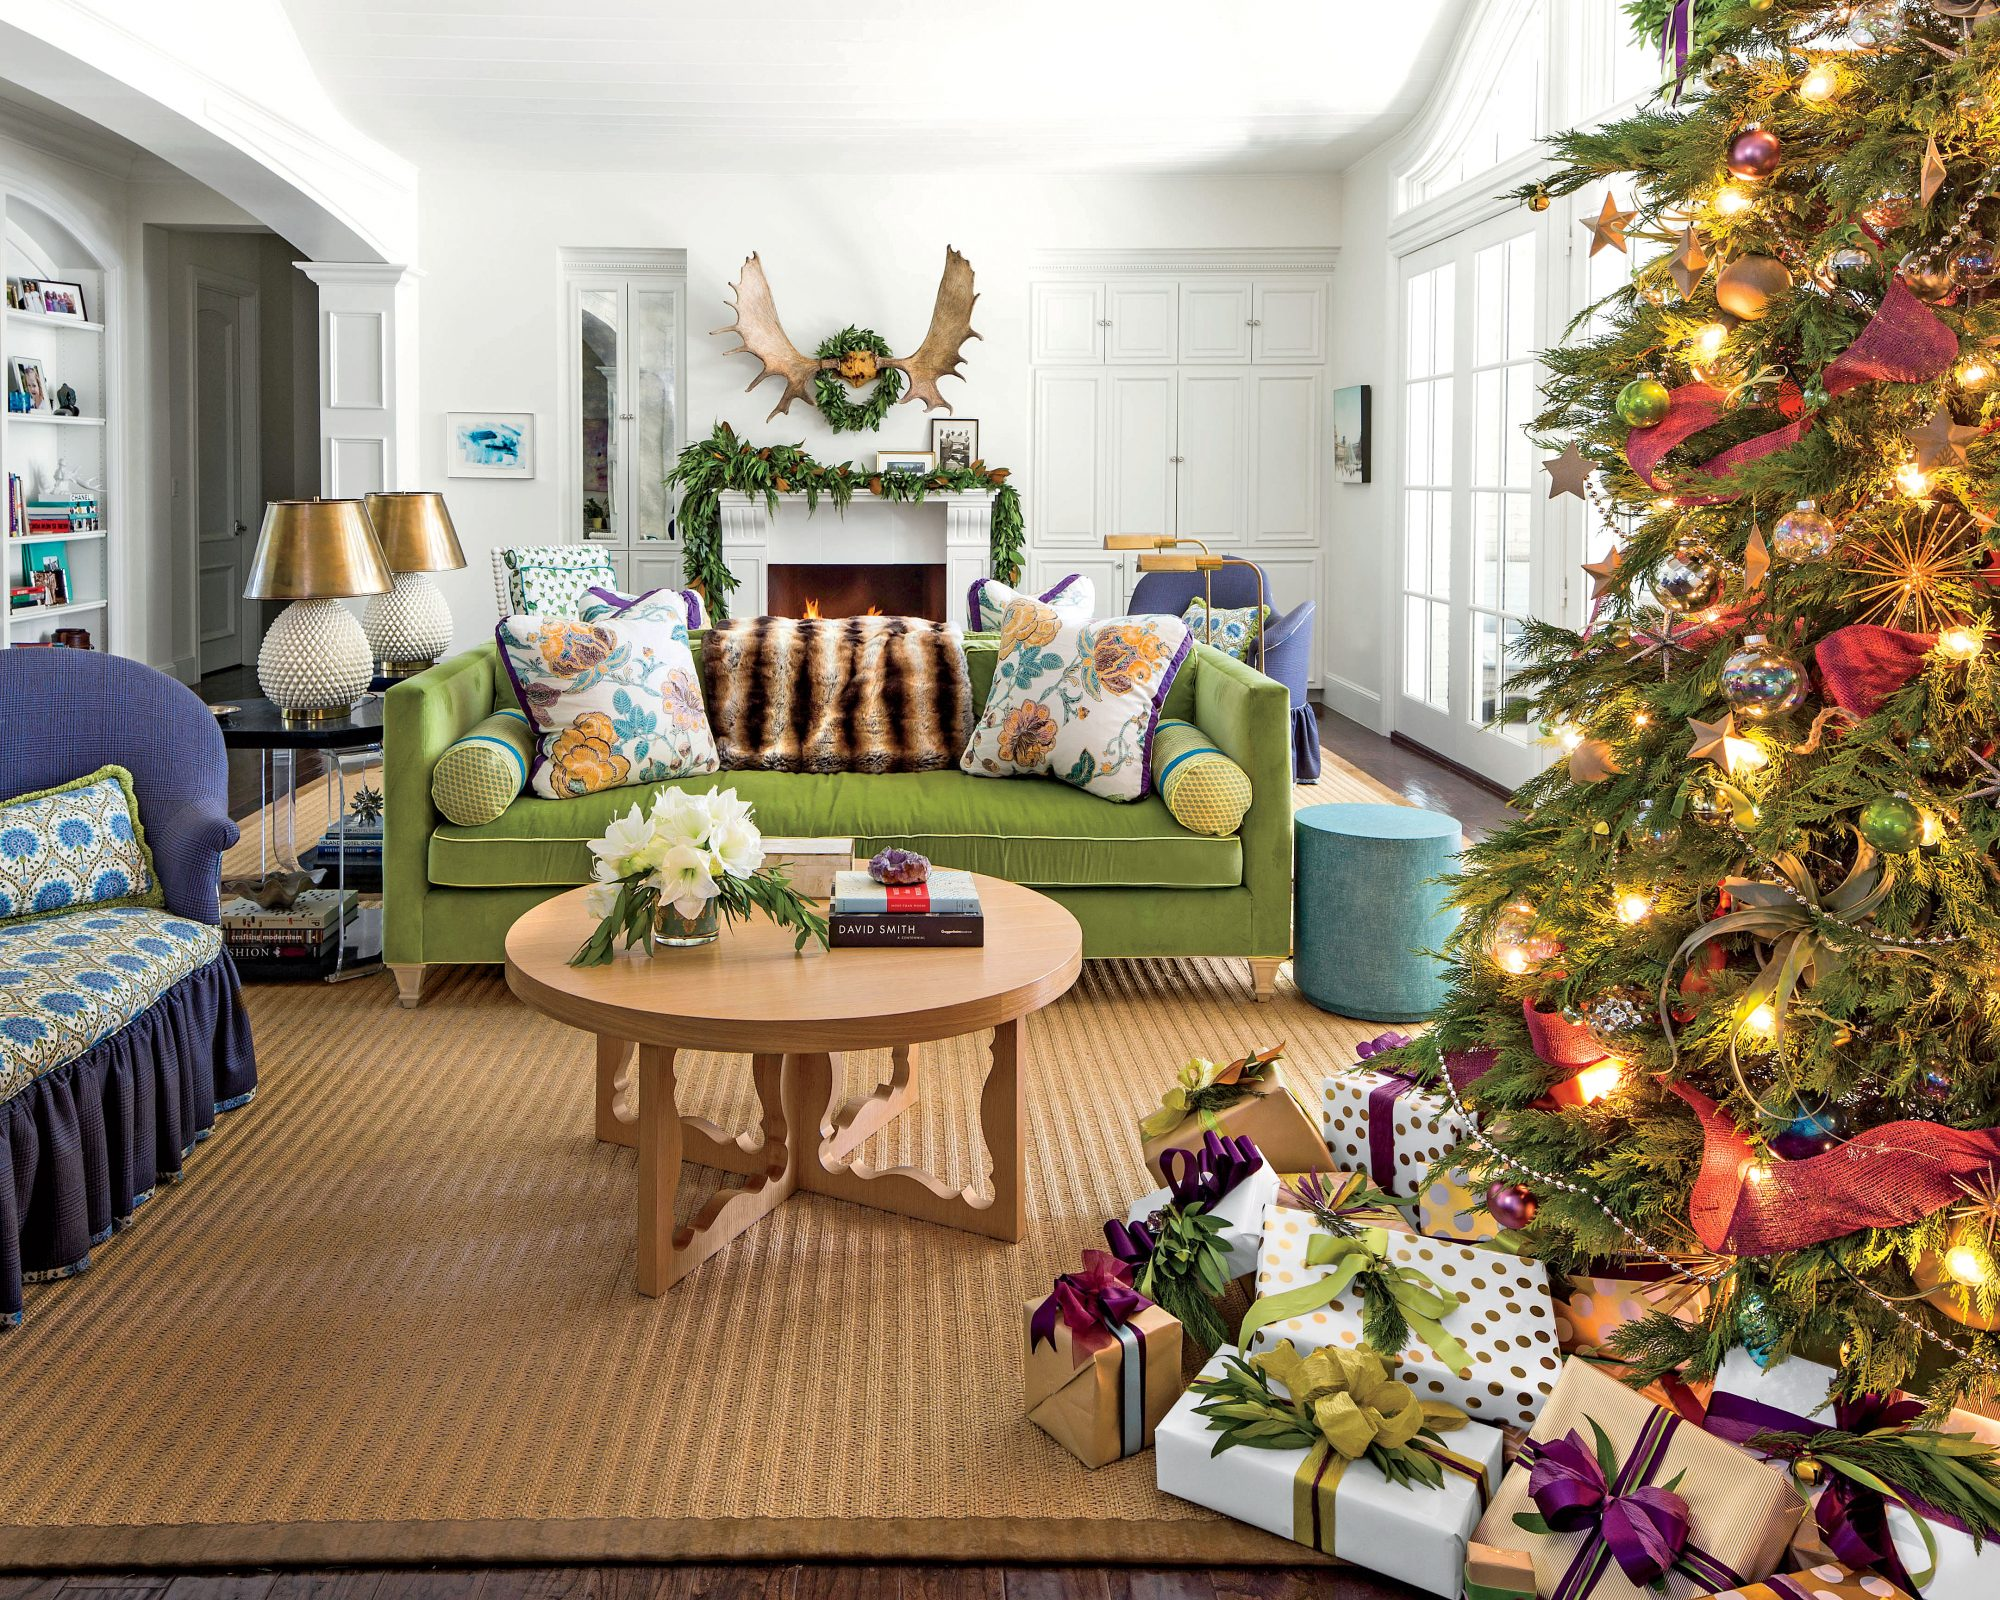 Tilton Finwick Living Room for Christmas